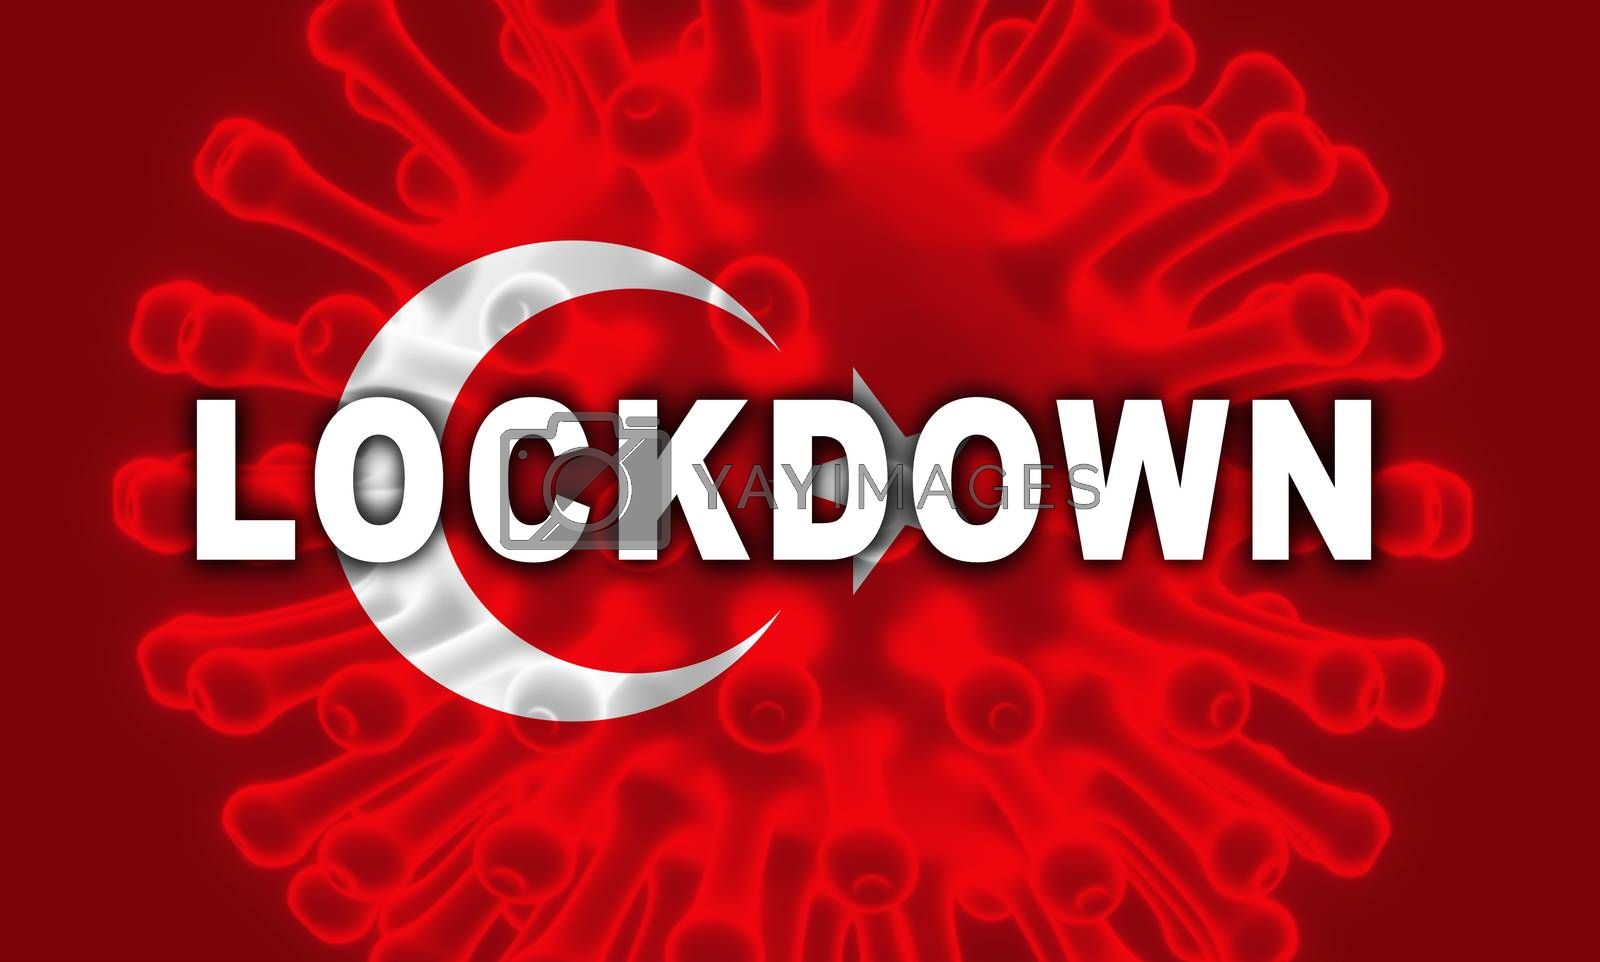 Turkey lockdown preventing ncov epidemic or outbreak. Covid 19 Turkish precaution to isolate disease infection - 3d Illustration